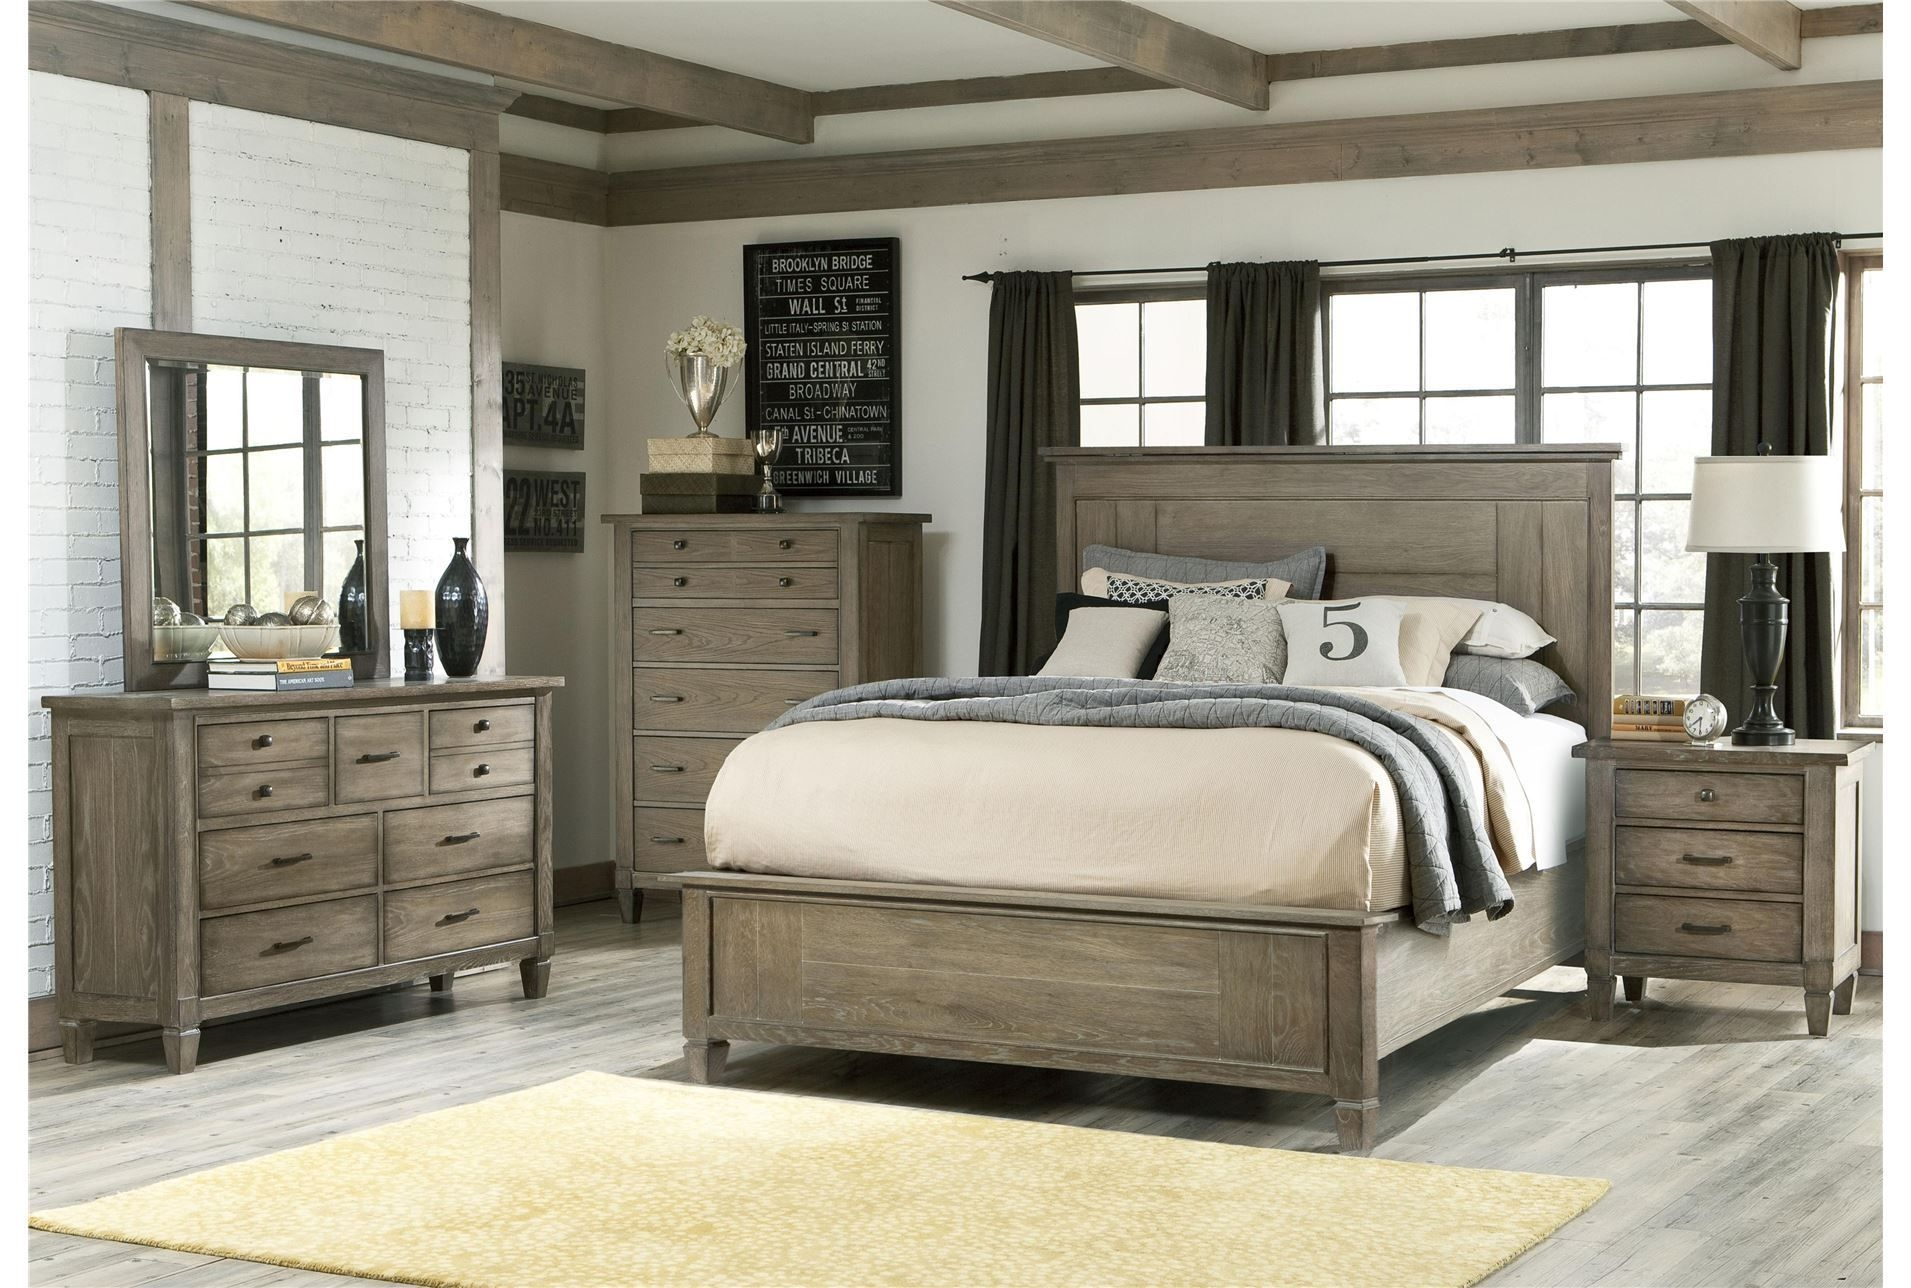 Simple Wood Bedroom Sets Set